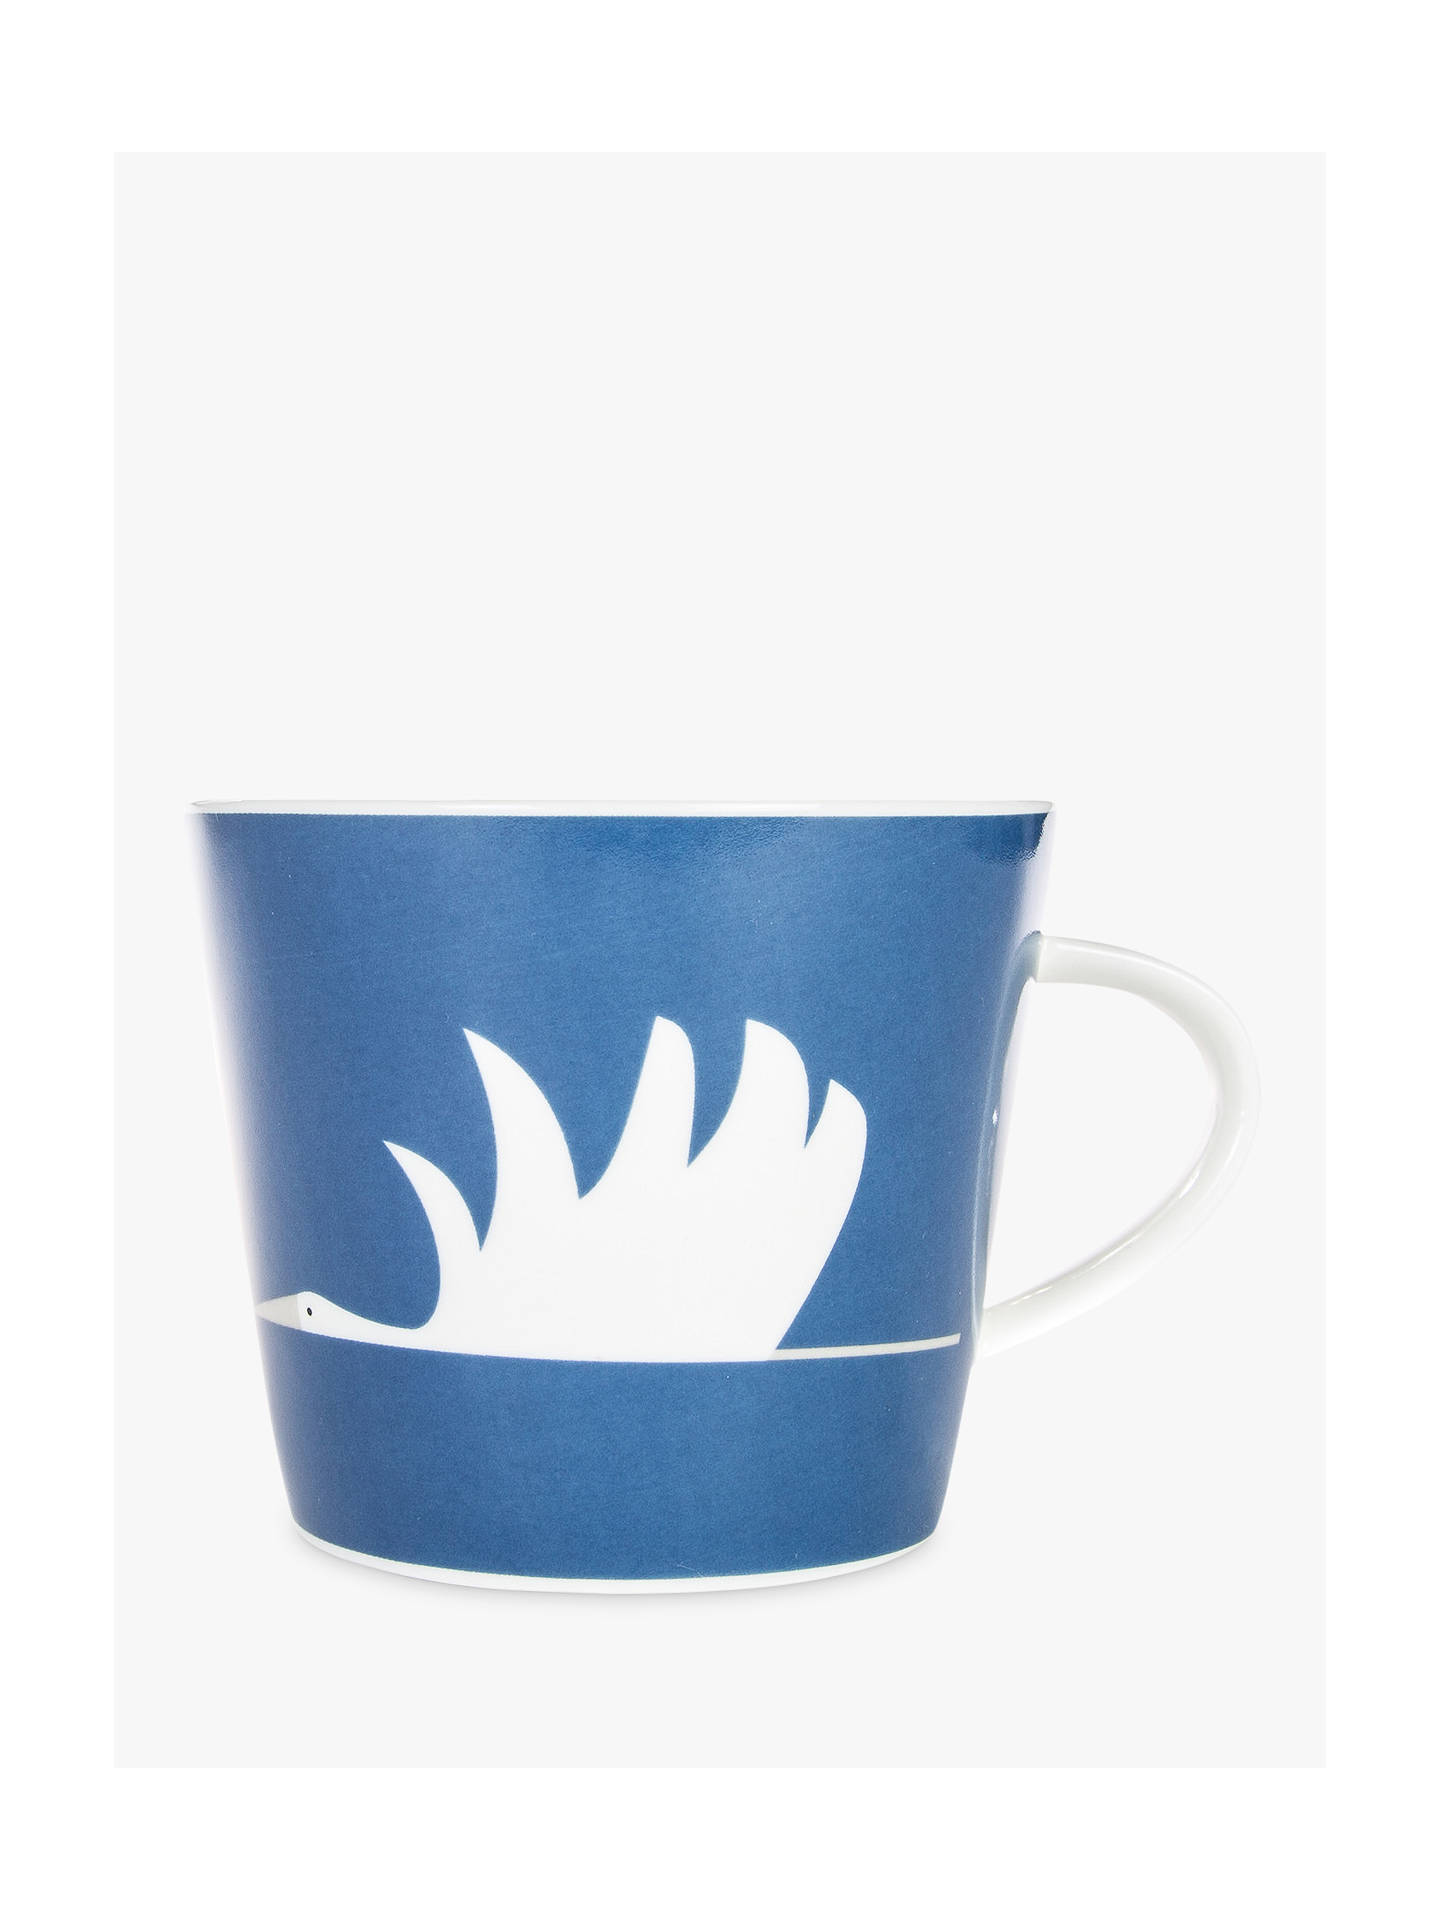 BuyScion Colin Crane Mug, 350ml, Blue Online at johnlewis.com